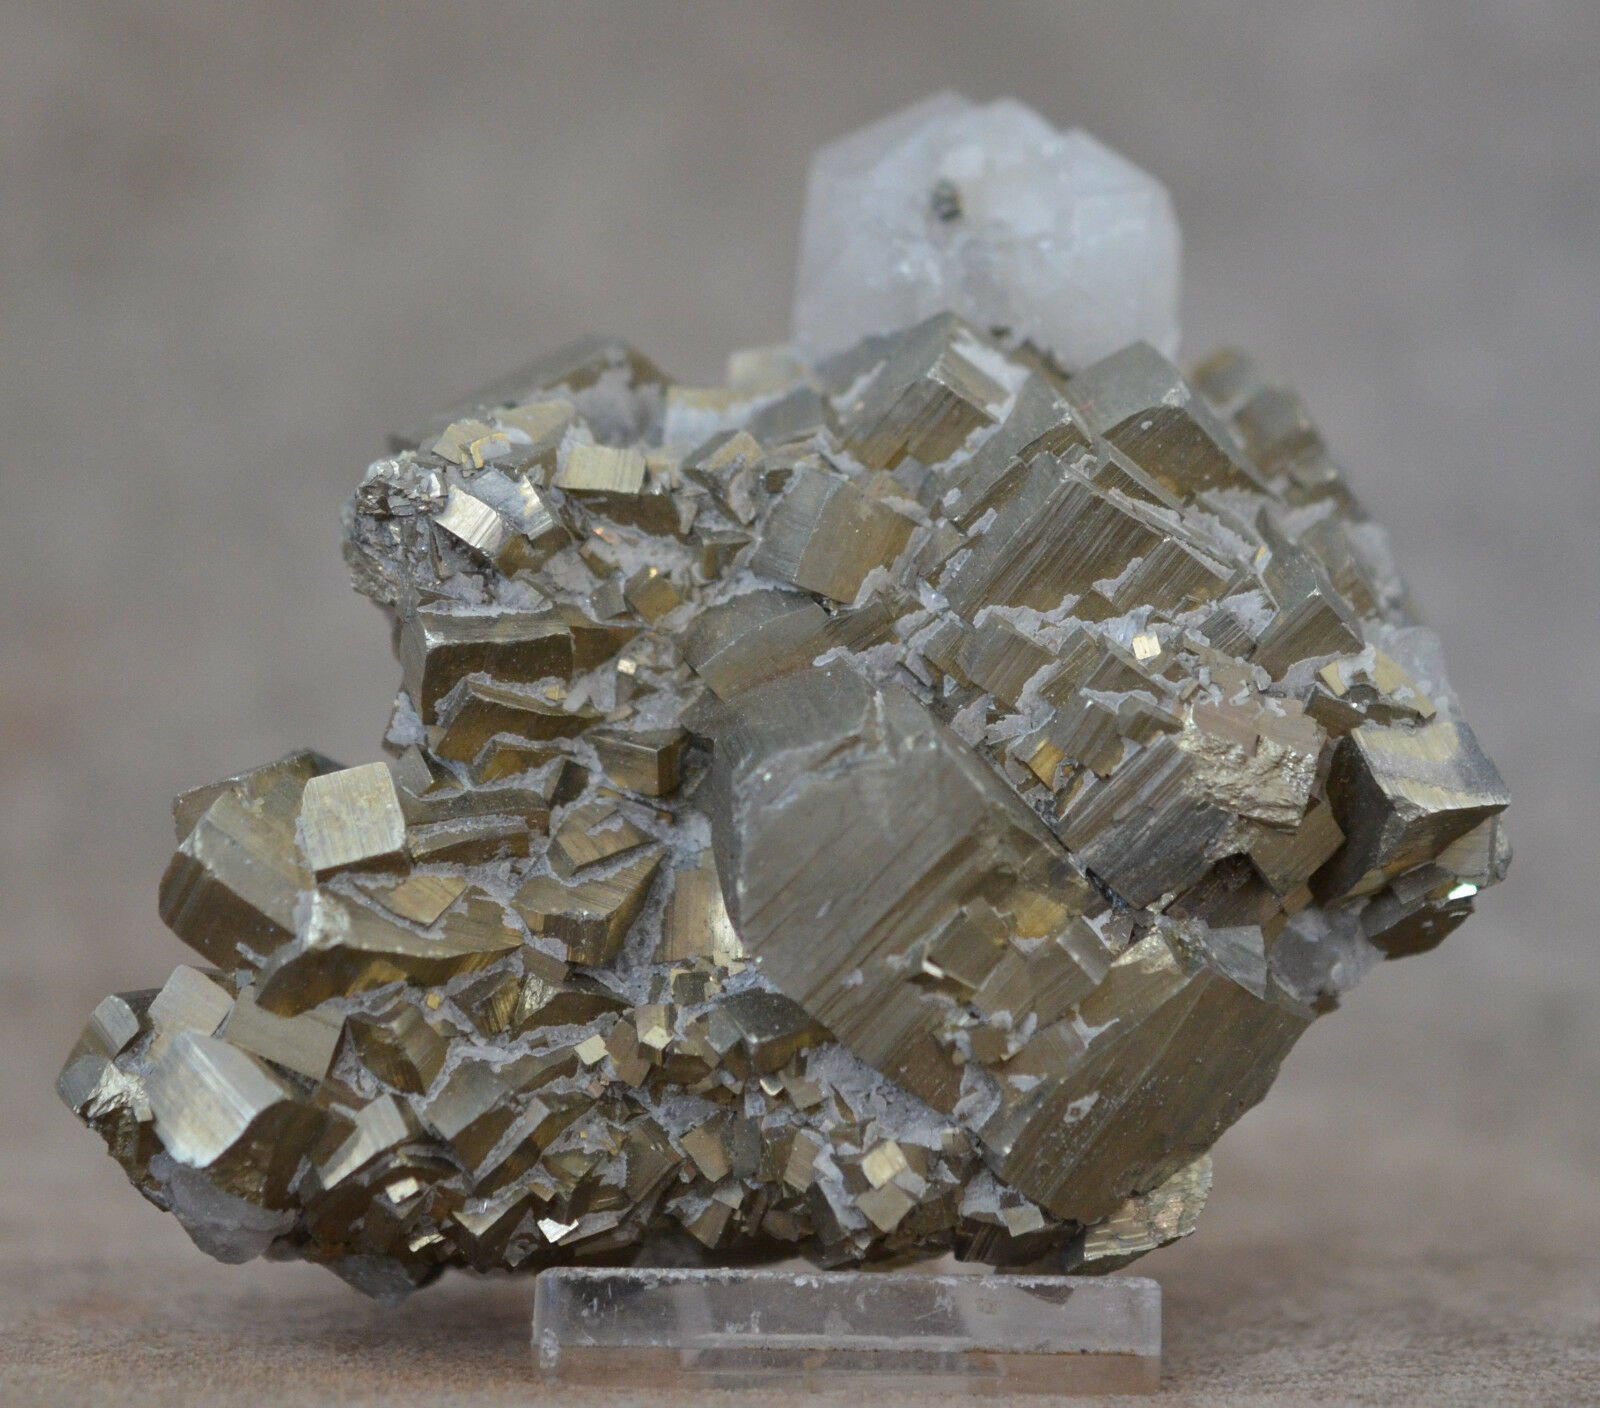 Gorgeous Quartz on Pyrite Crystal Specimen